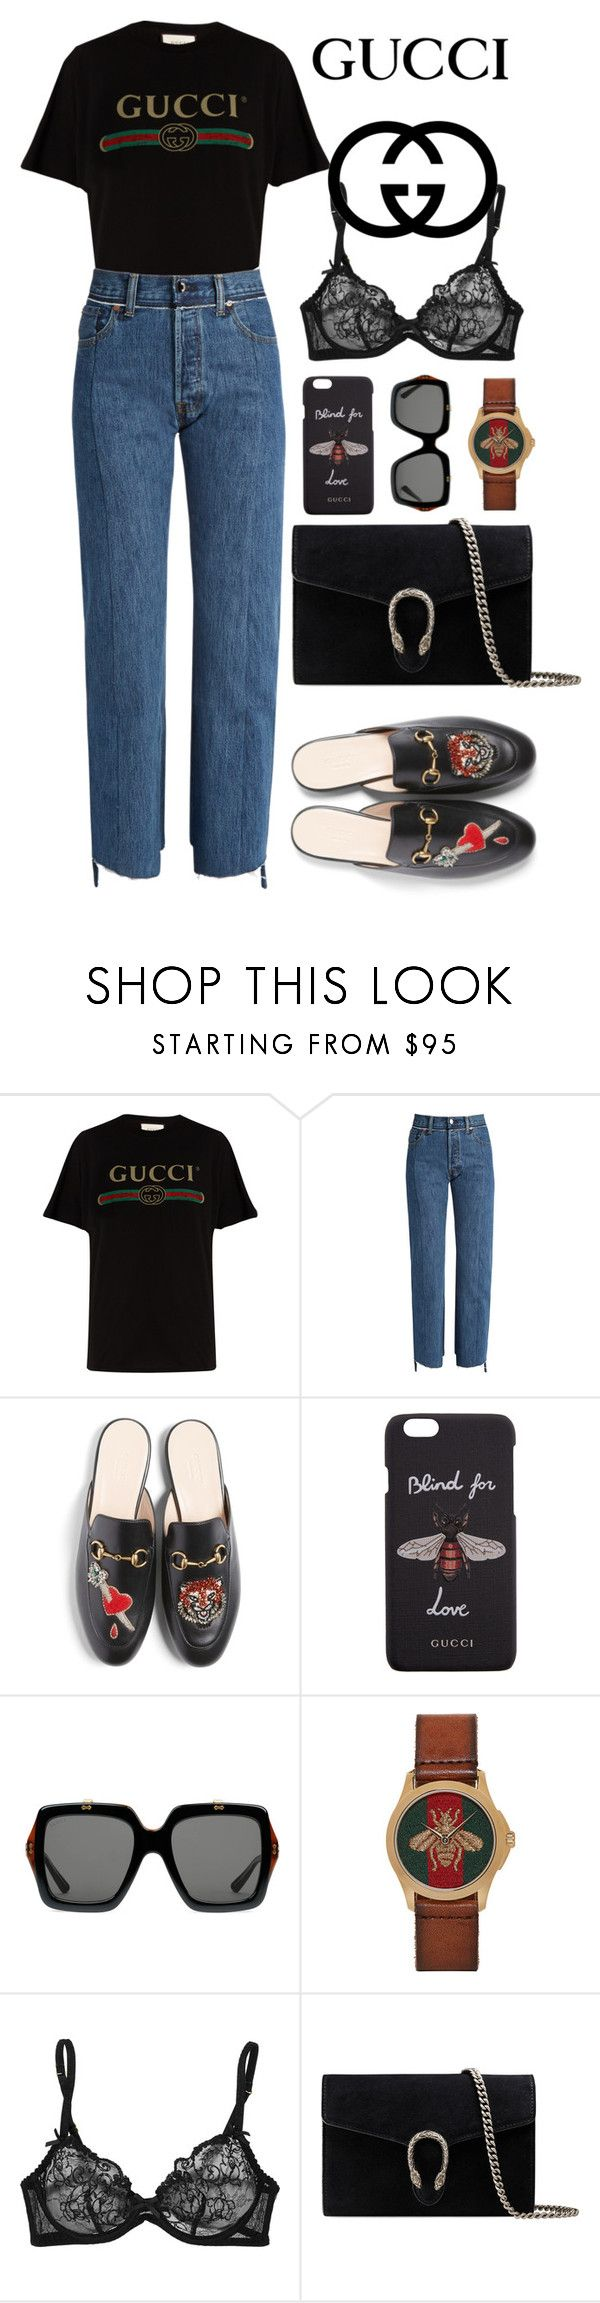 """""""street style #66: total look Gucci"""" by veronicagnzlz ❤ liked on Polyvore featuring Gucci, Vetements and Agent Provocateur"""